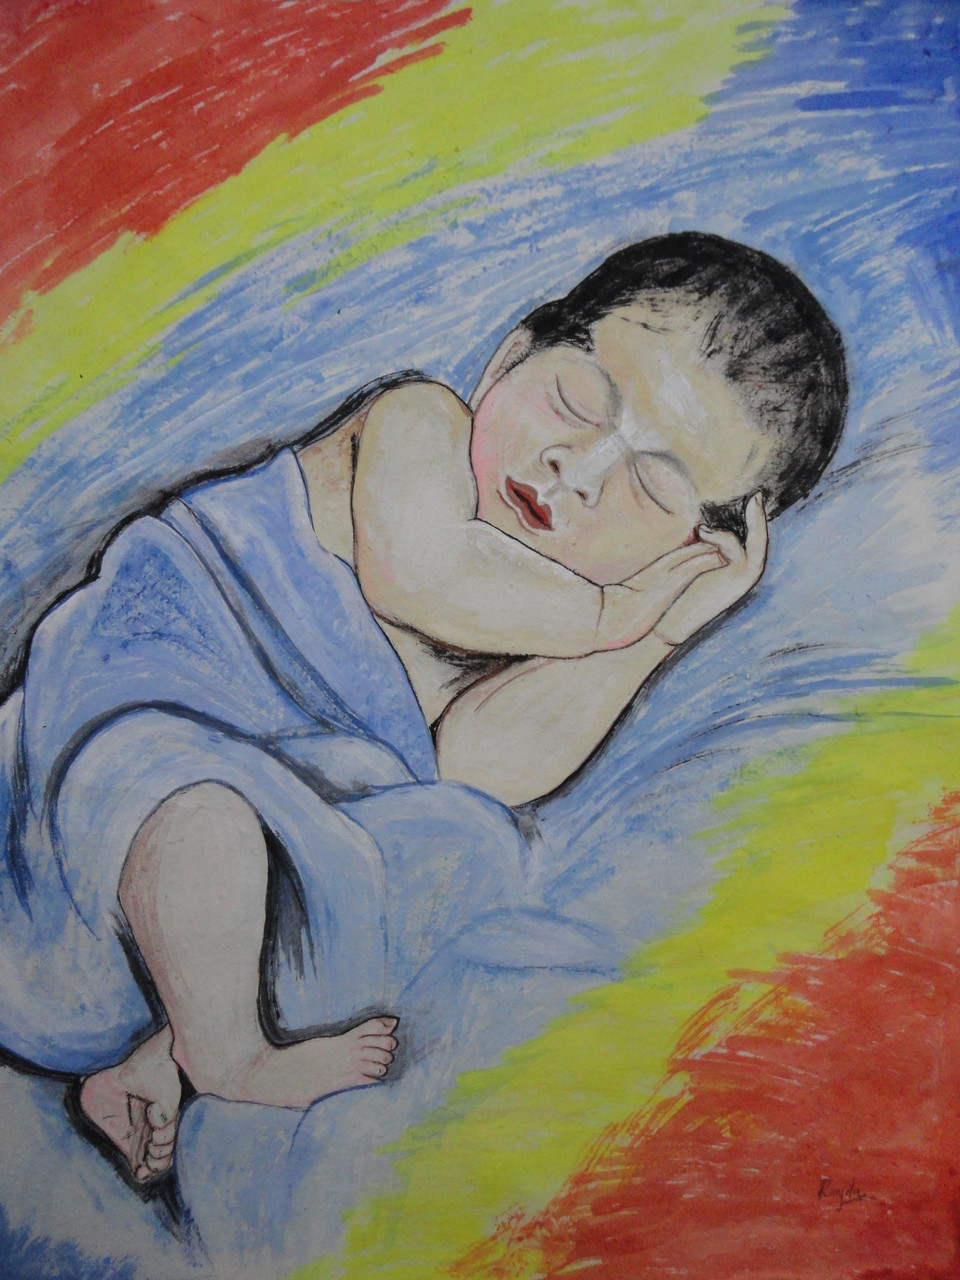 Buy baby handmade painting by ranjita panda codeart 4741 28333 paintings for sale online in india